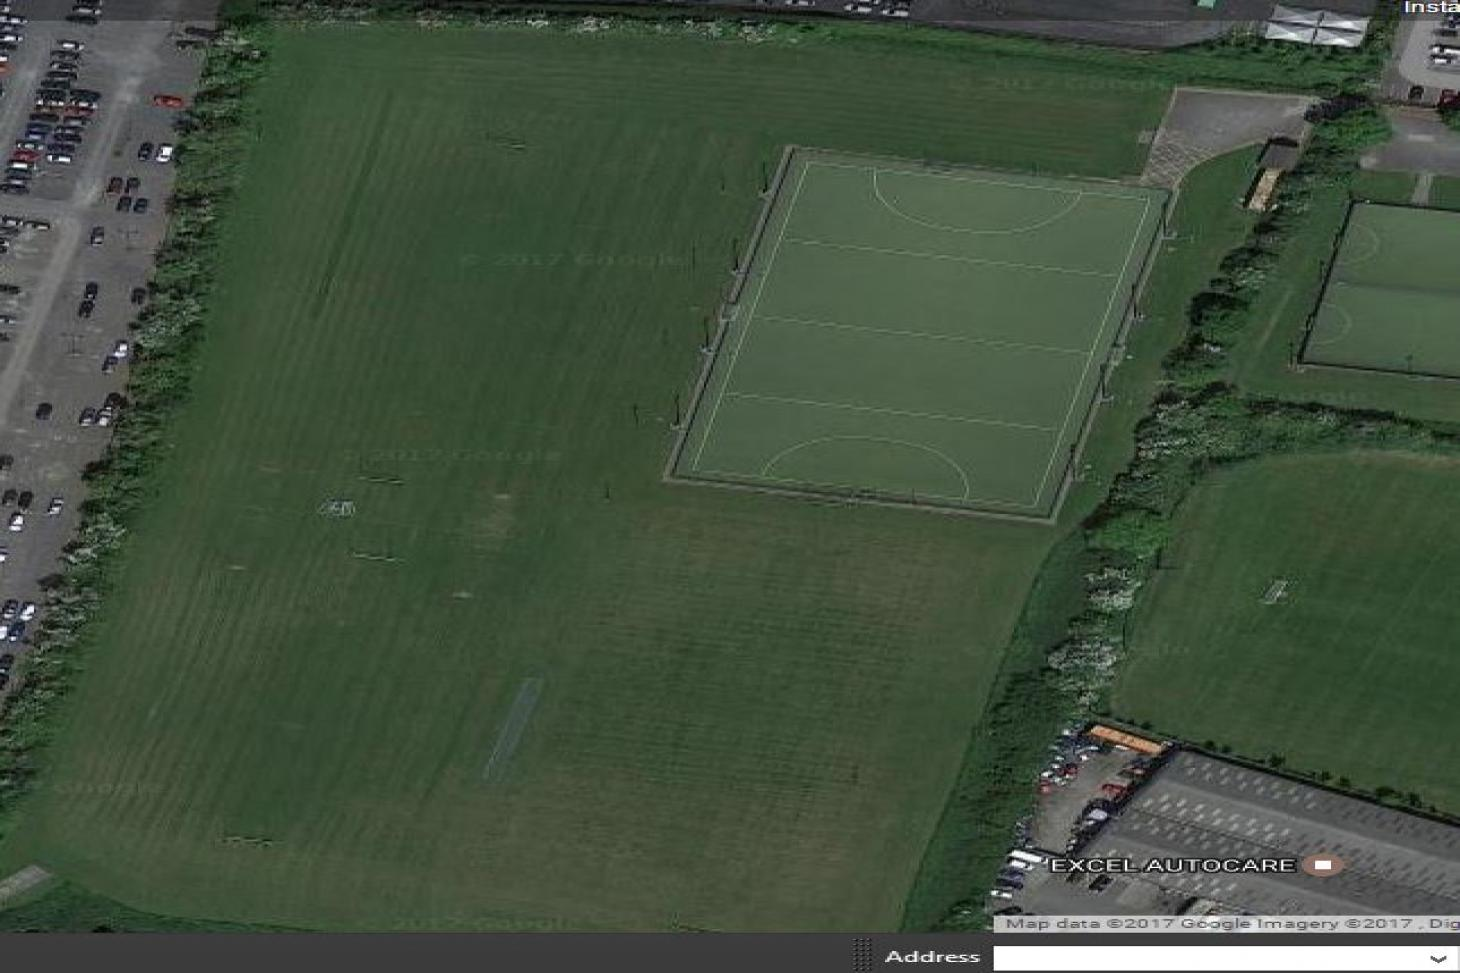 Royal College of Surgeons Sports Grounds Union | Grass rugby pitch